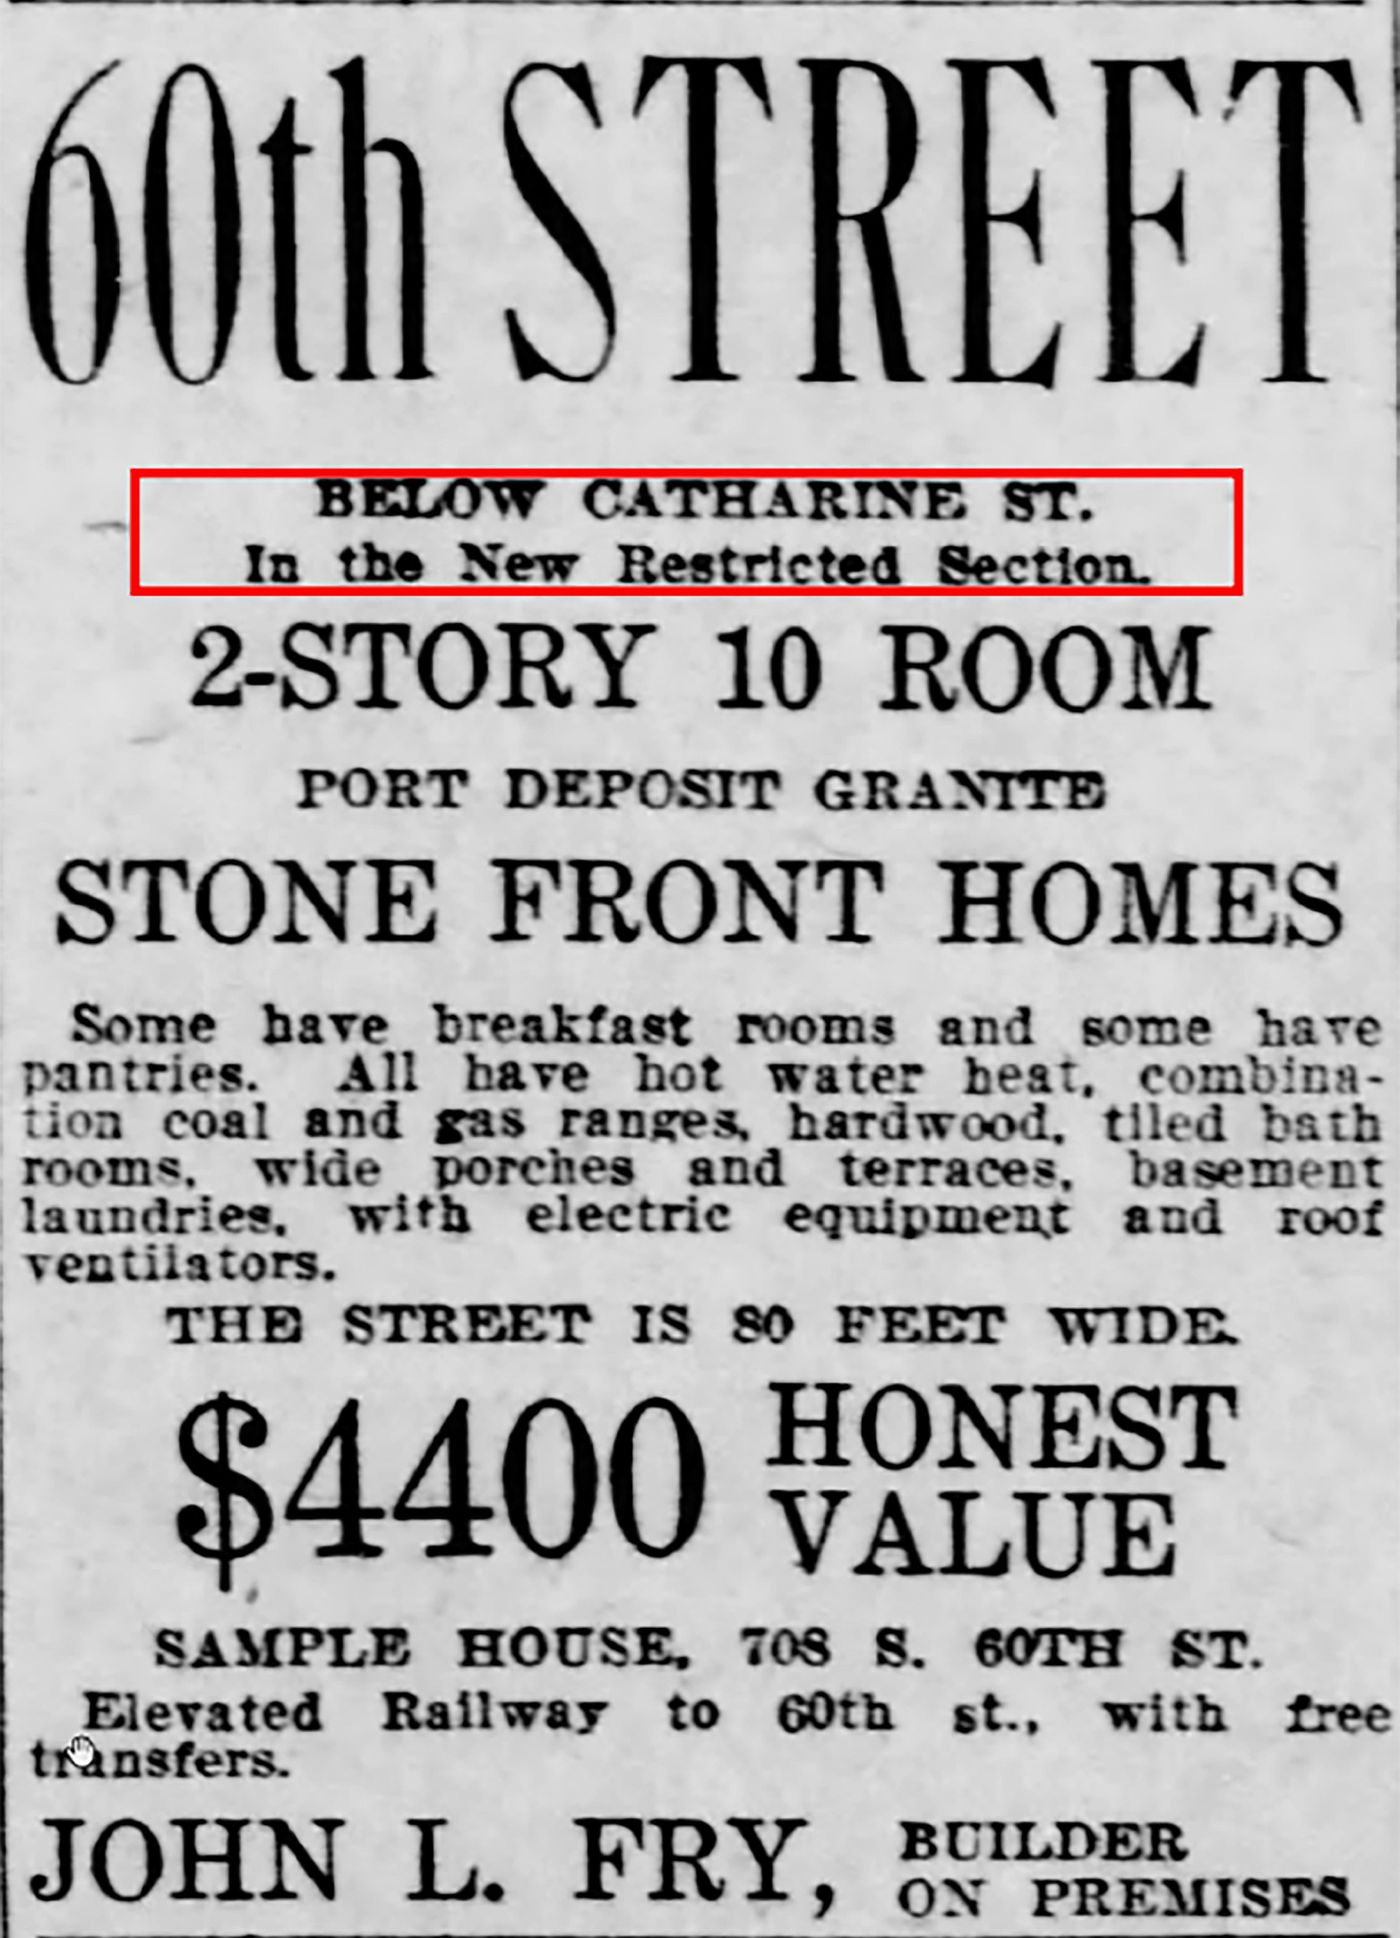 A 1911 ad from the Philadelphia Inquirer promoting homes available only to white buyers.